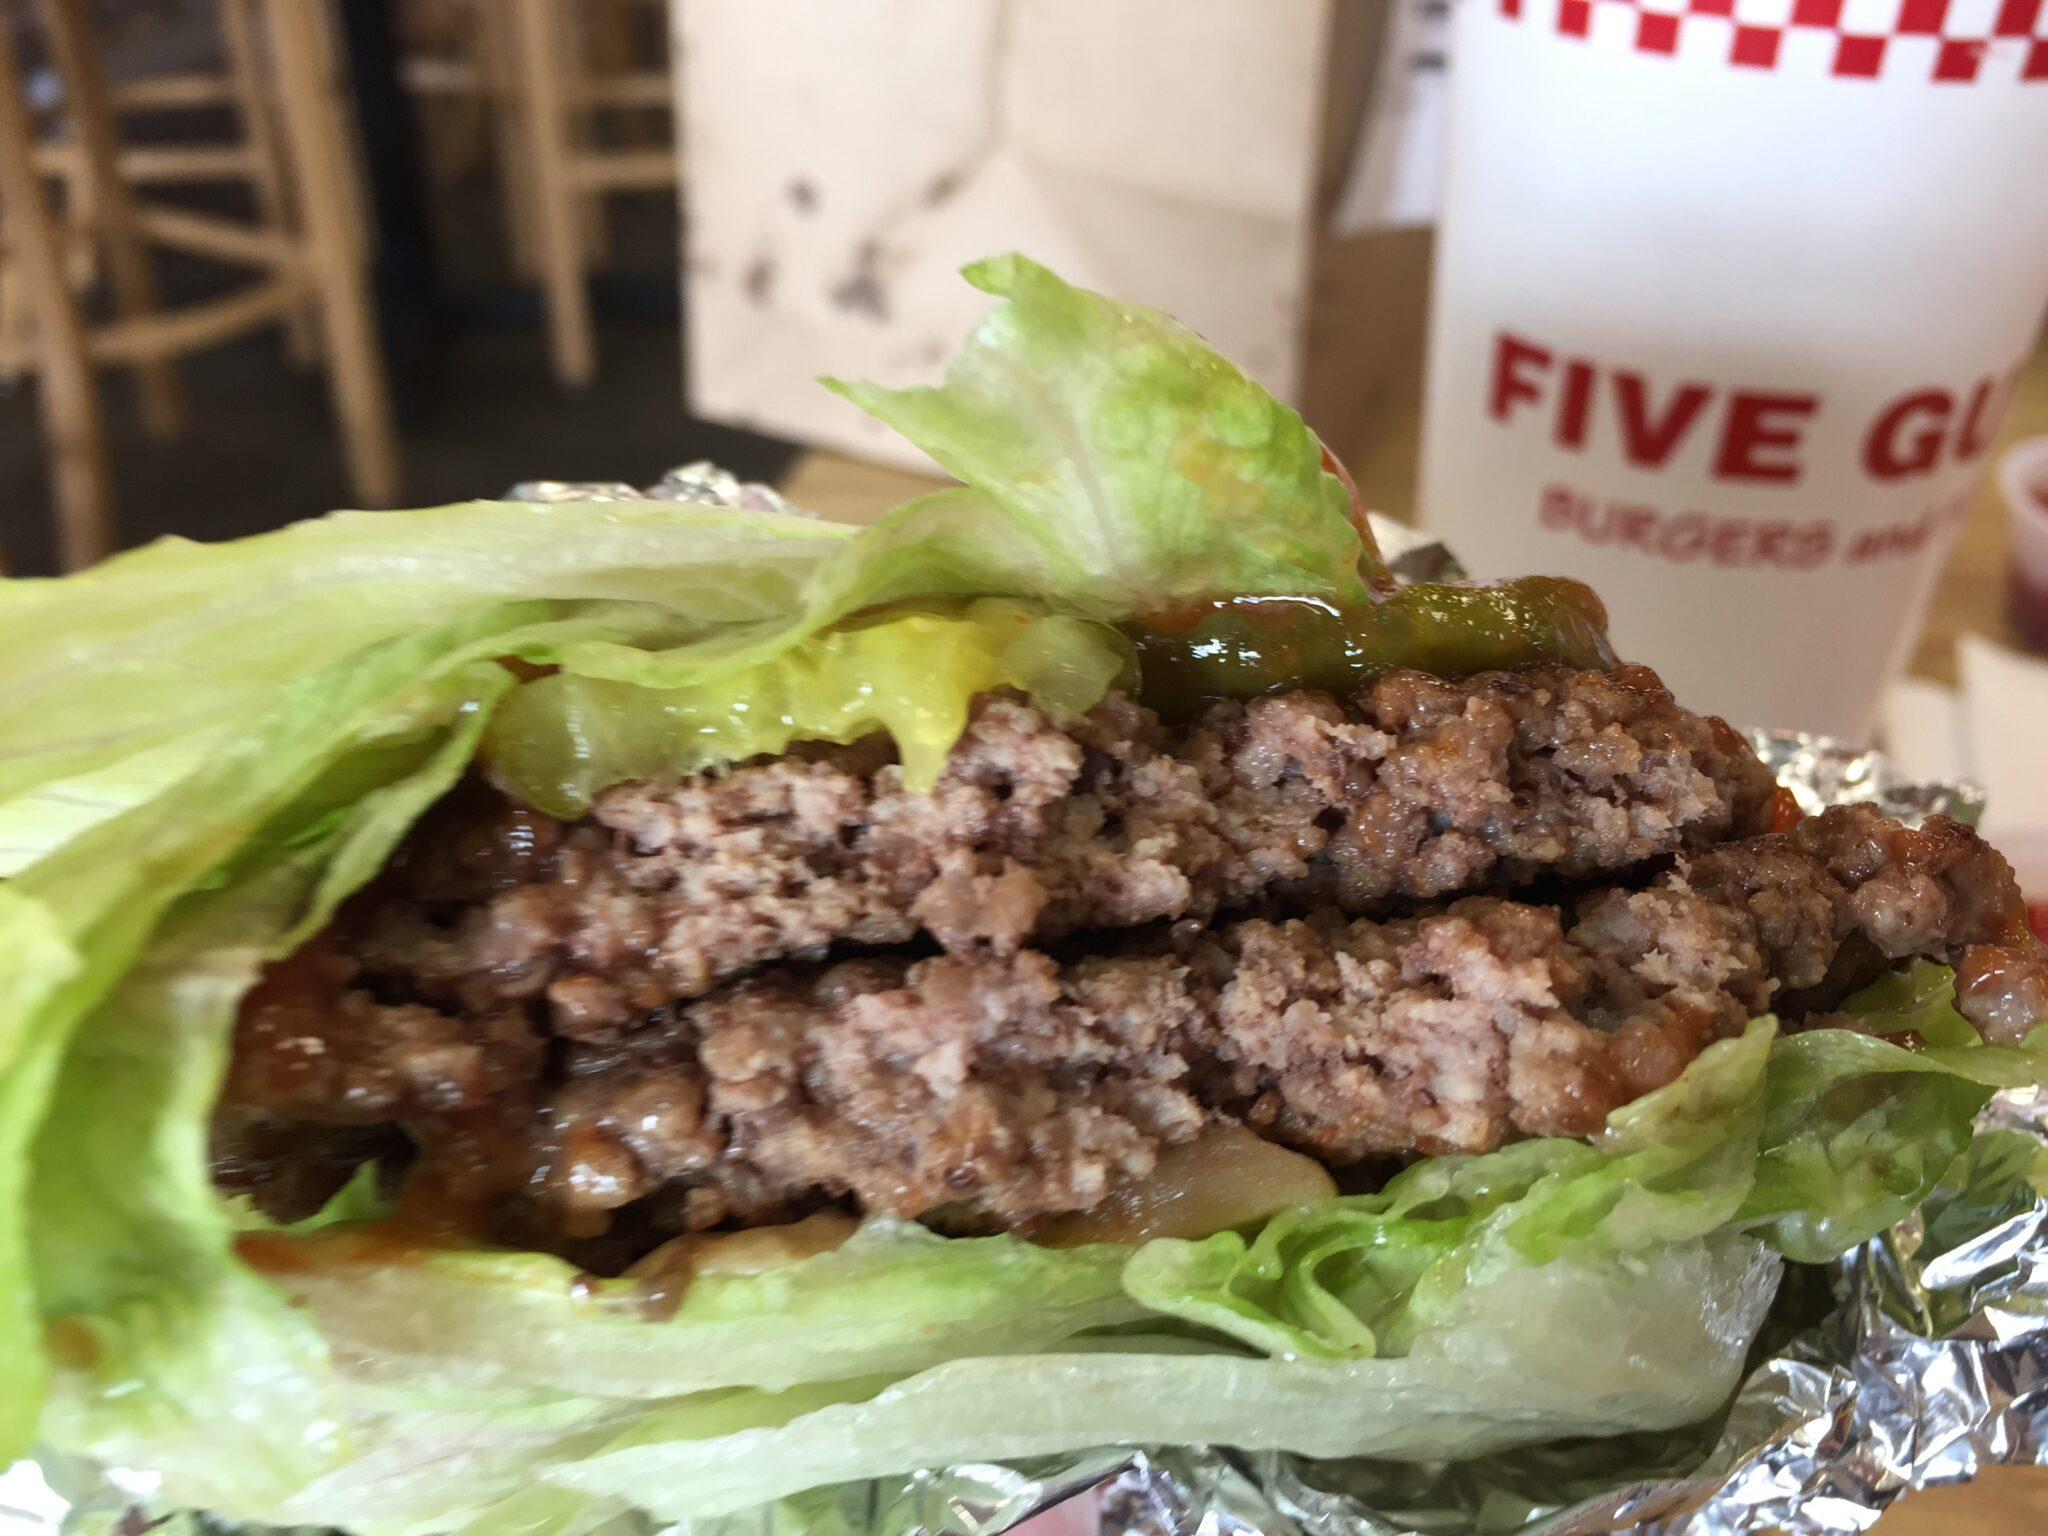 5 guys sioux falls